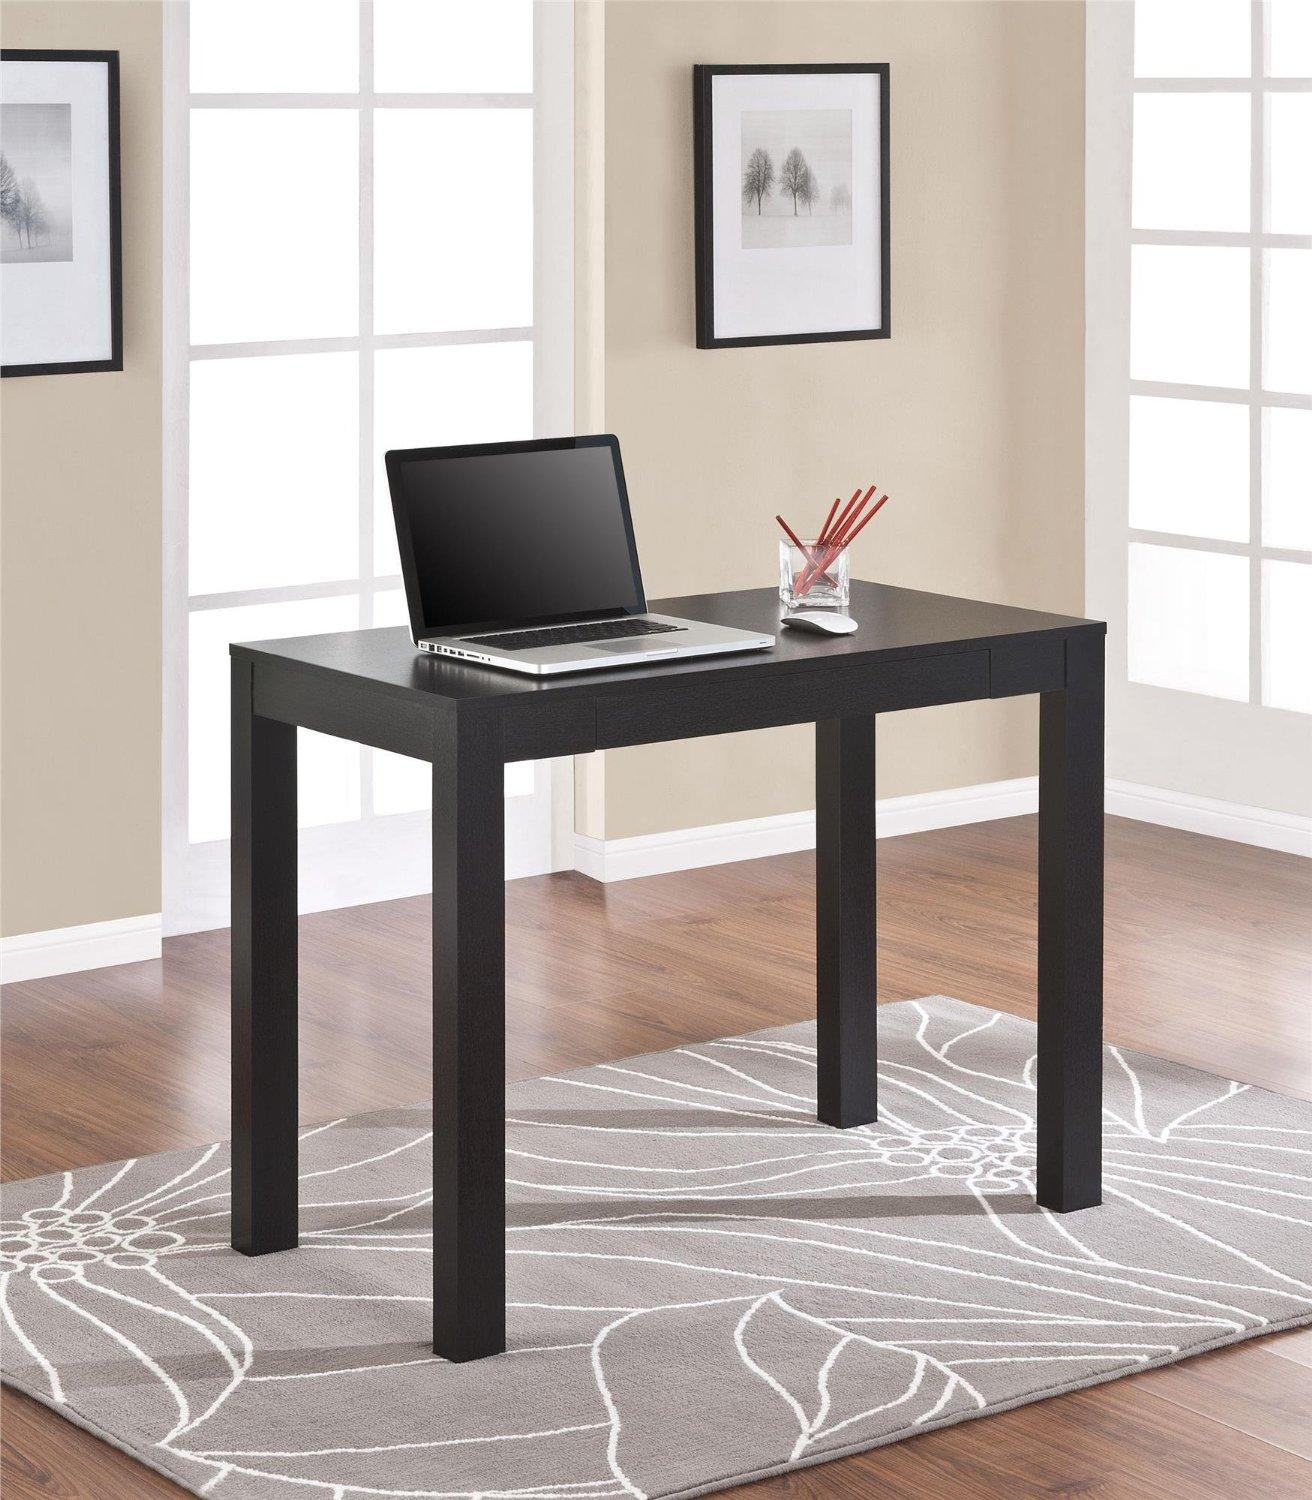 $49.00 Altra Parsons Desk, Black Oak